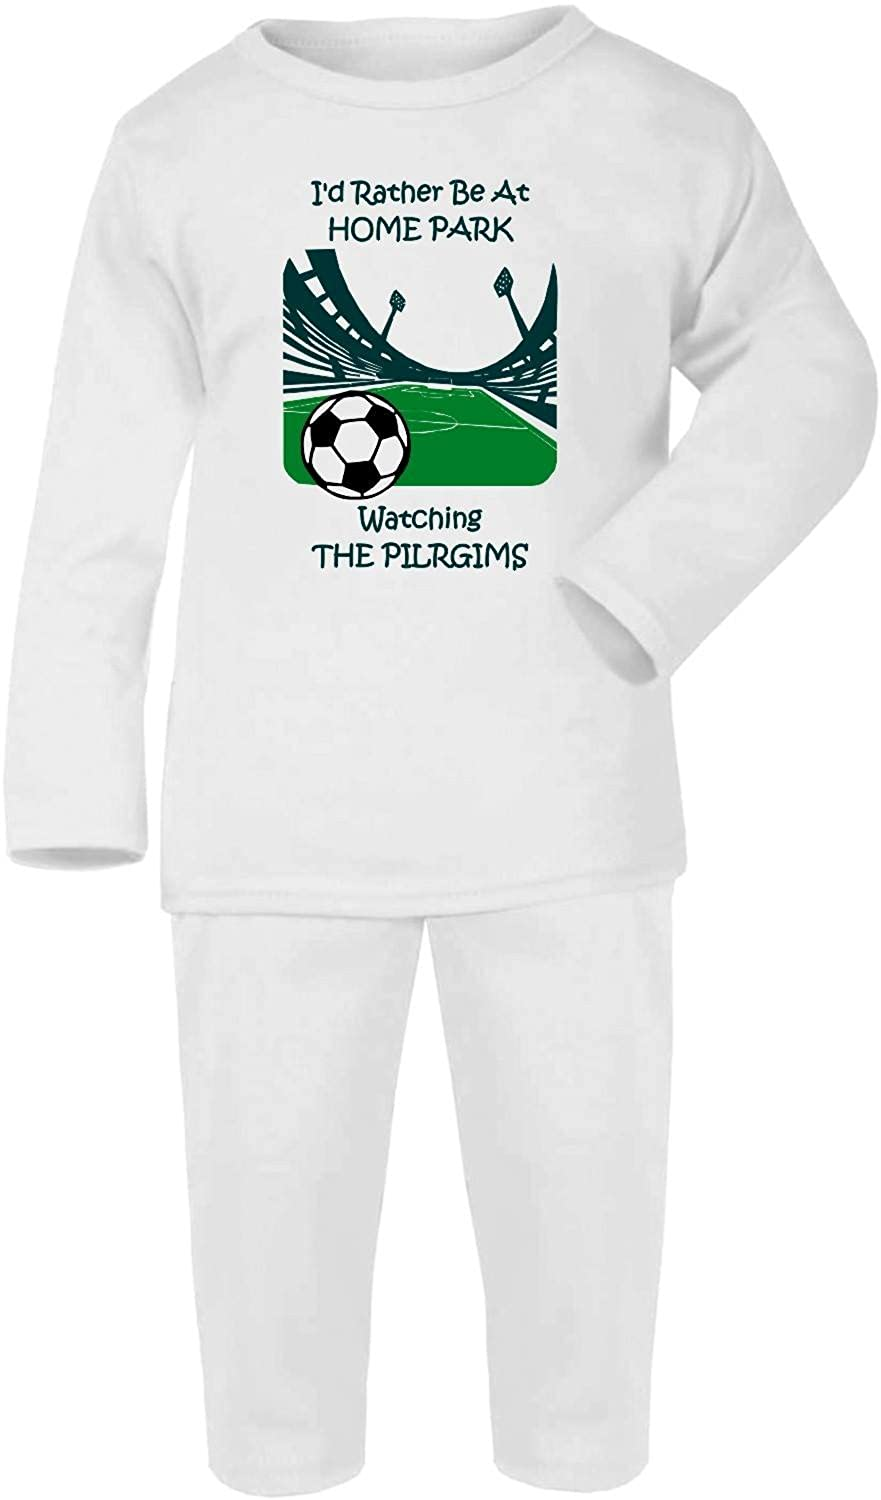 Hat-Trick Designs Plymouth Argyle Football Baby Pyjamas set PJs Nightwear/Sleepwear-I'd Rather Be-Unisex Gift